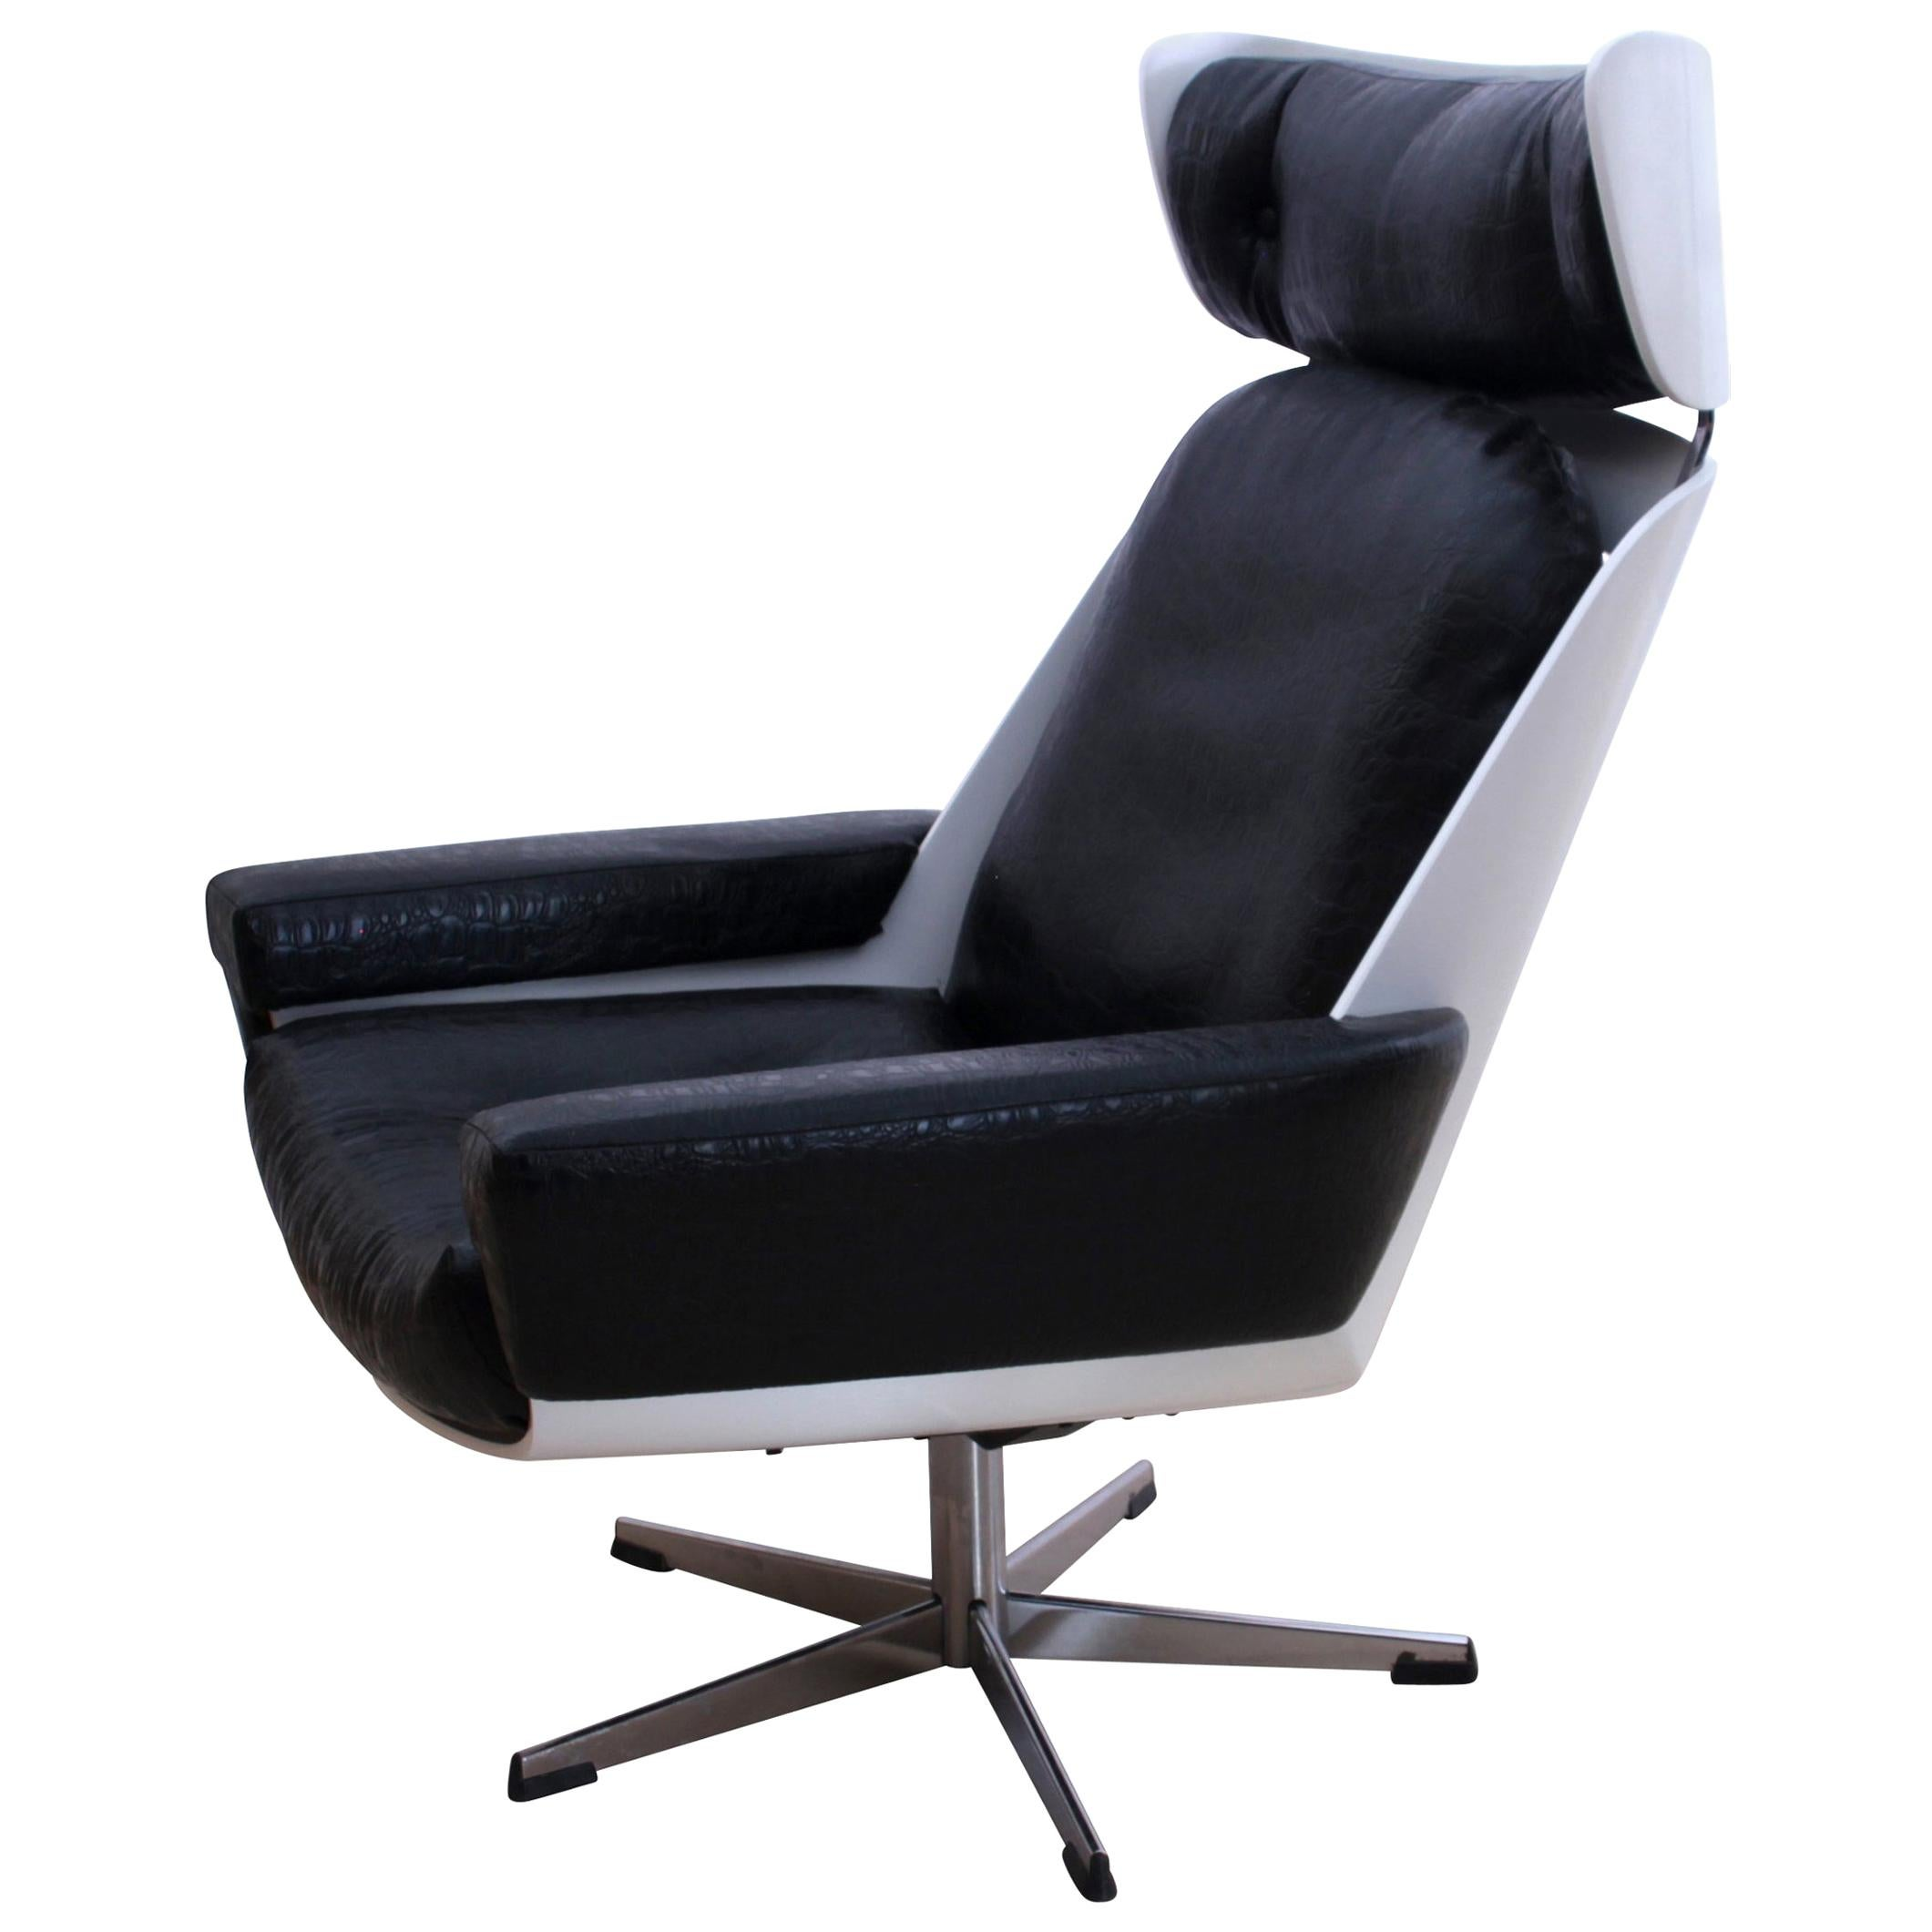 Space Age Lounge Chair, White Lacquer, Leather, Reptile Look, Germany, 1970s